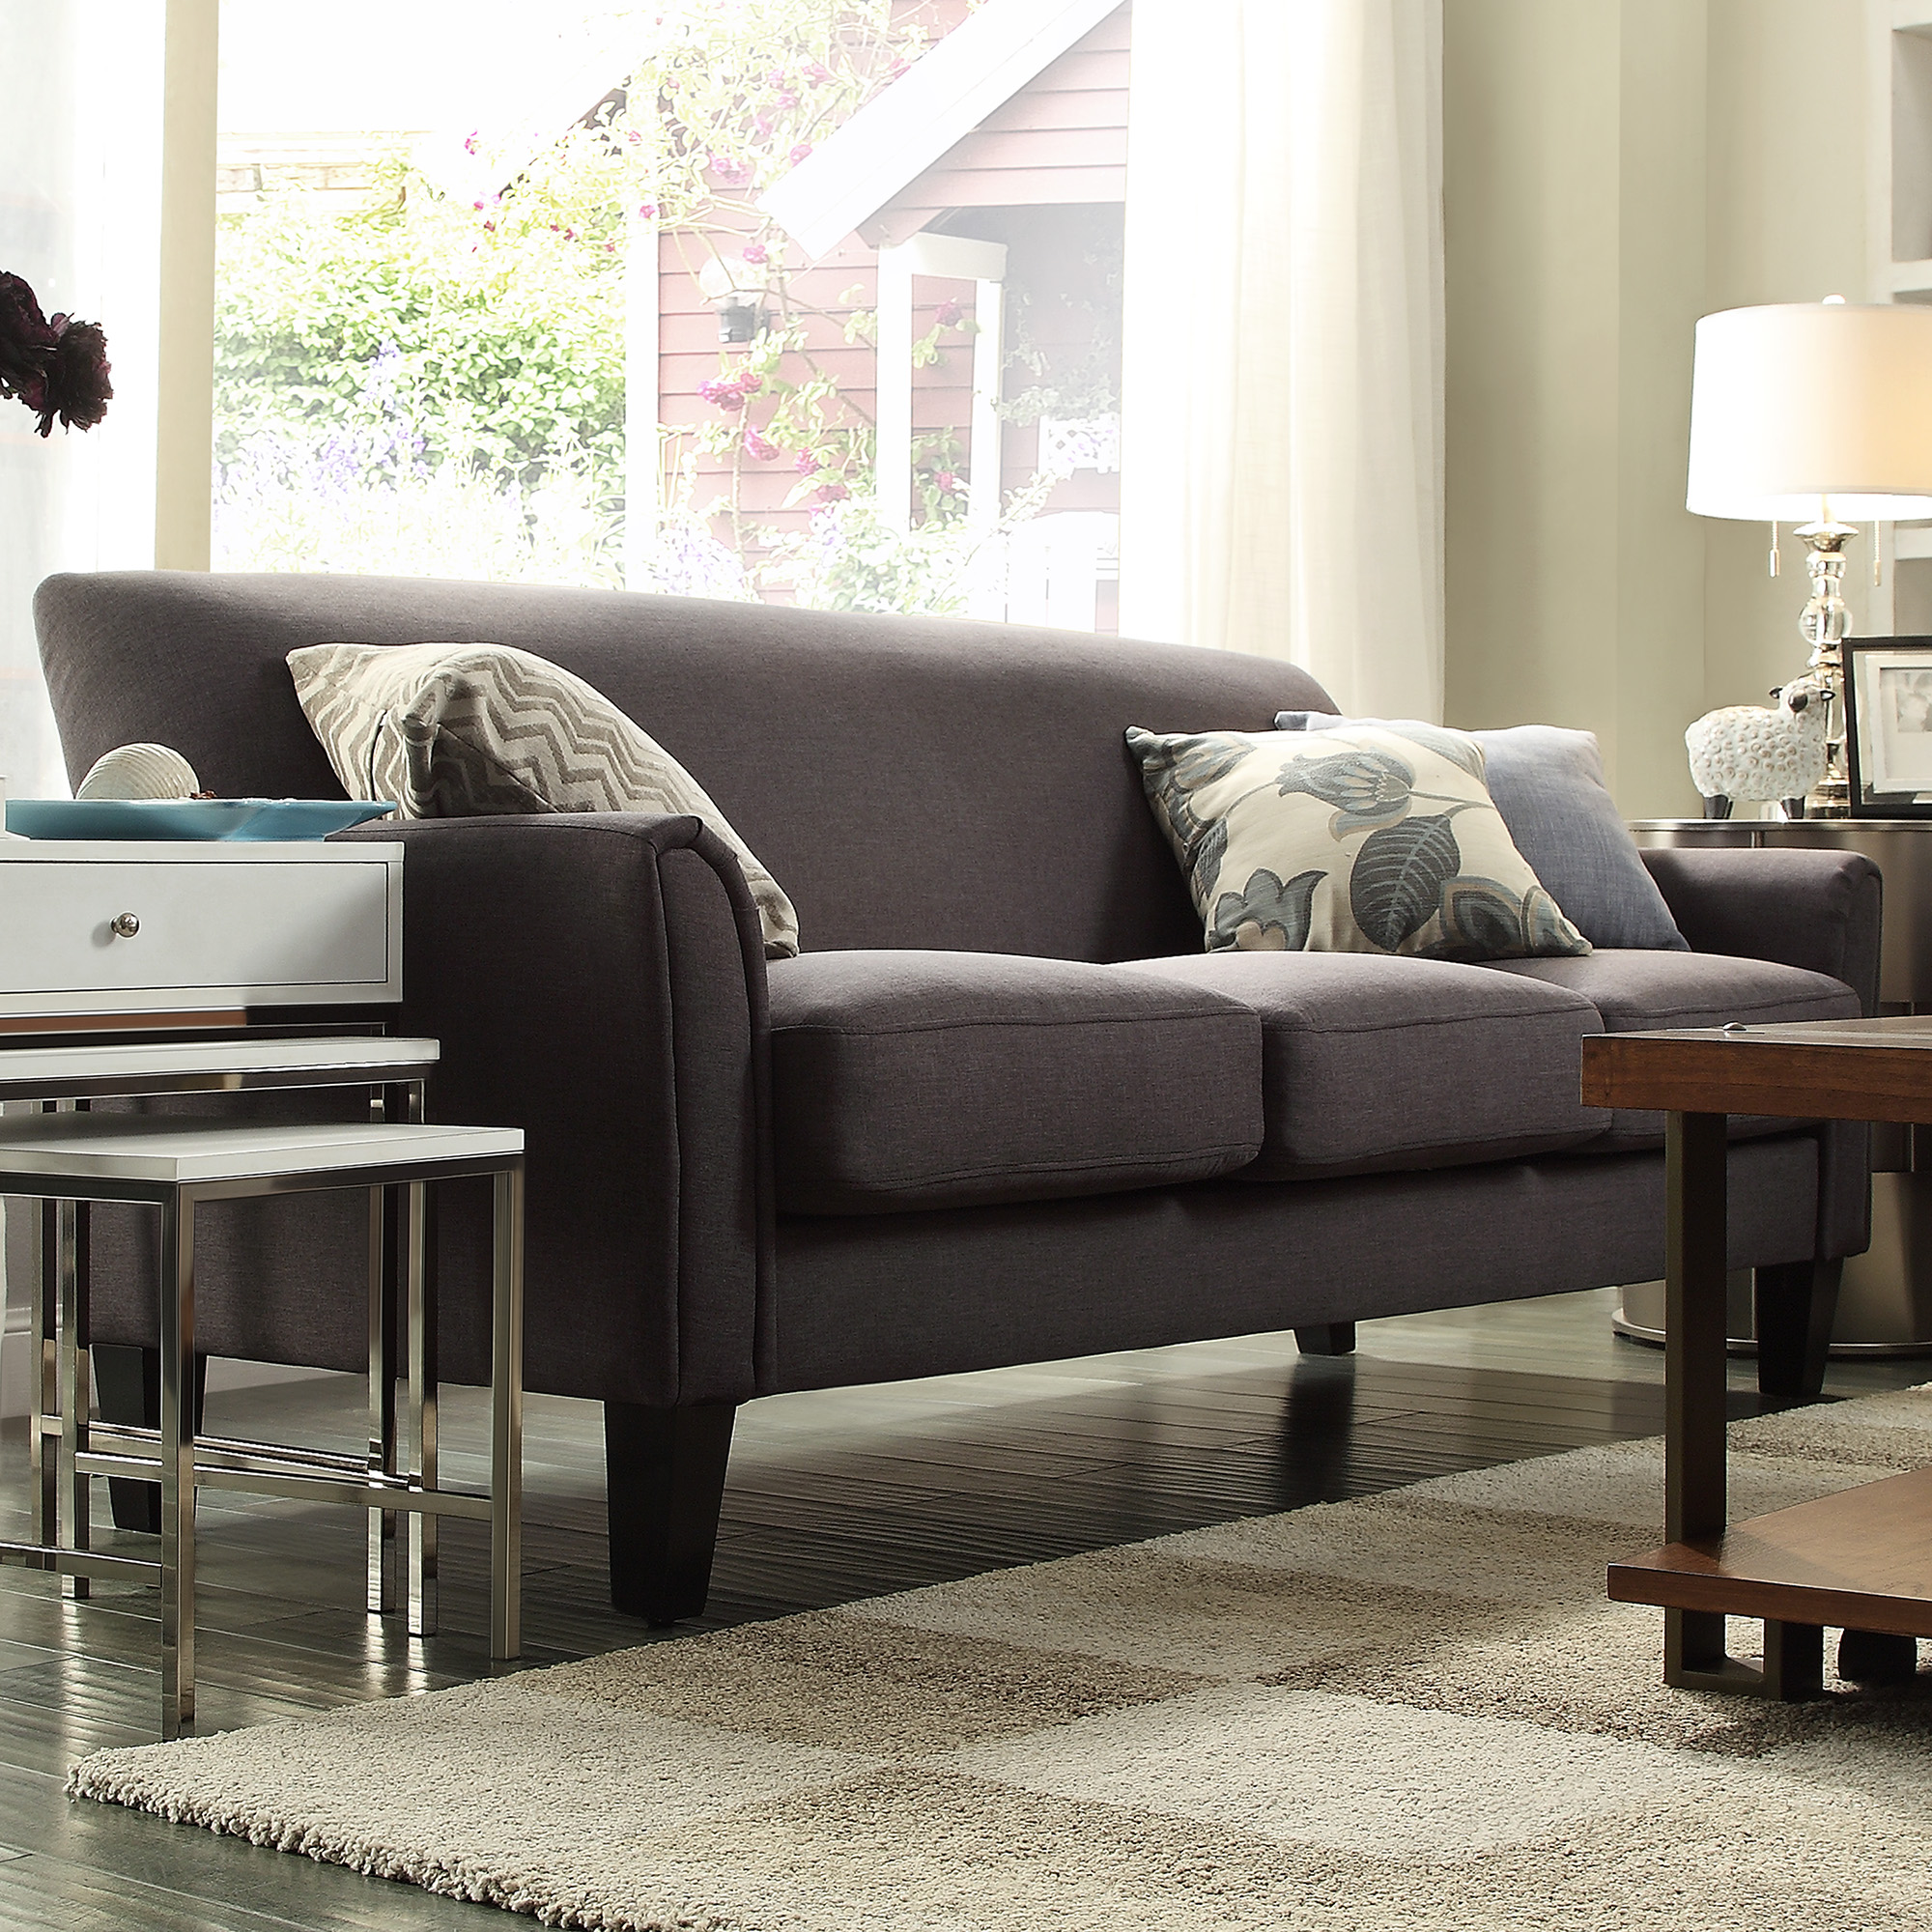 sears clearwater sofa sectional diamond park ave king bed oxford creek hill in dark grey shop your way